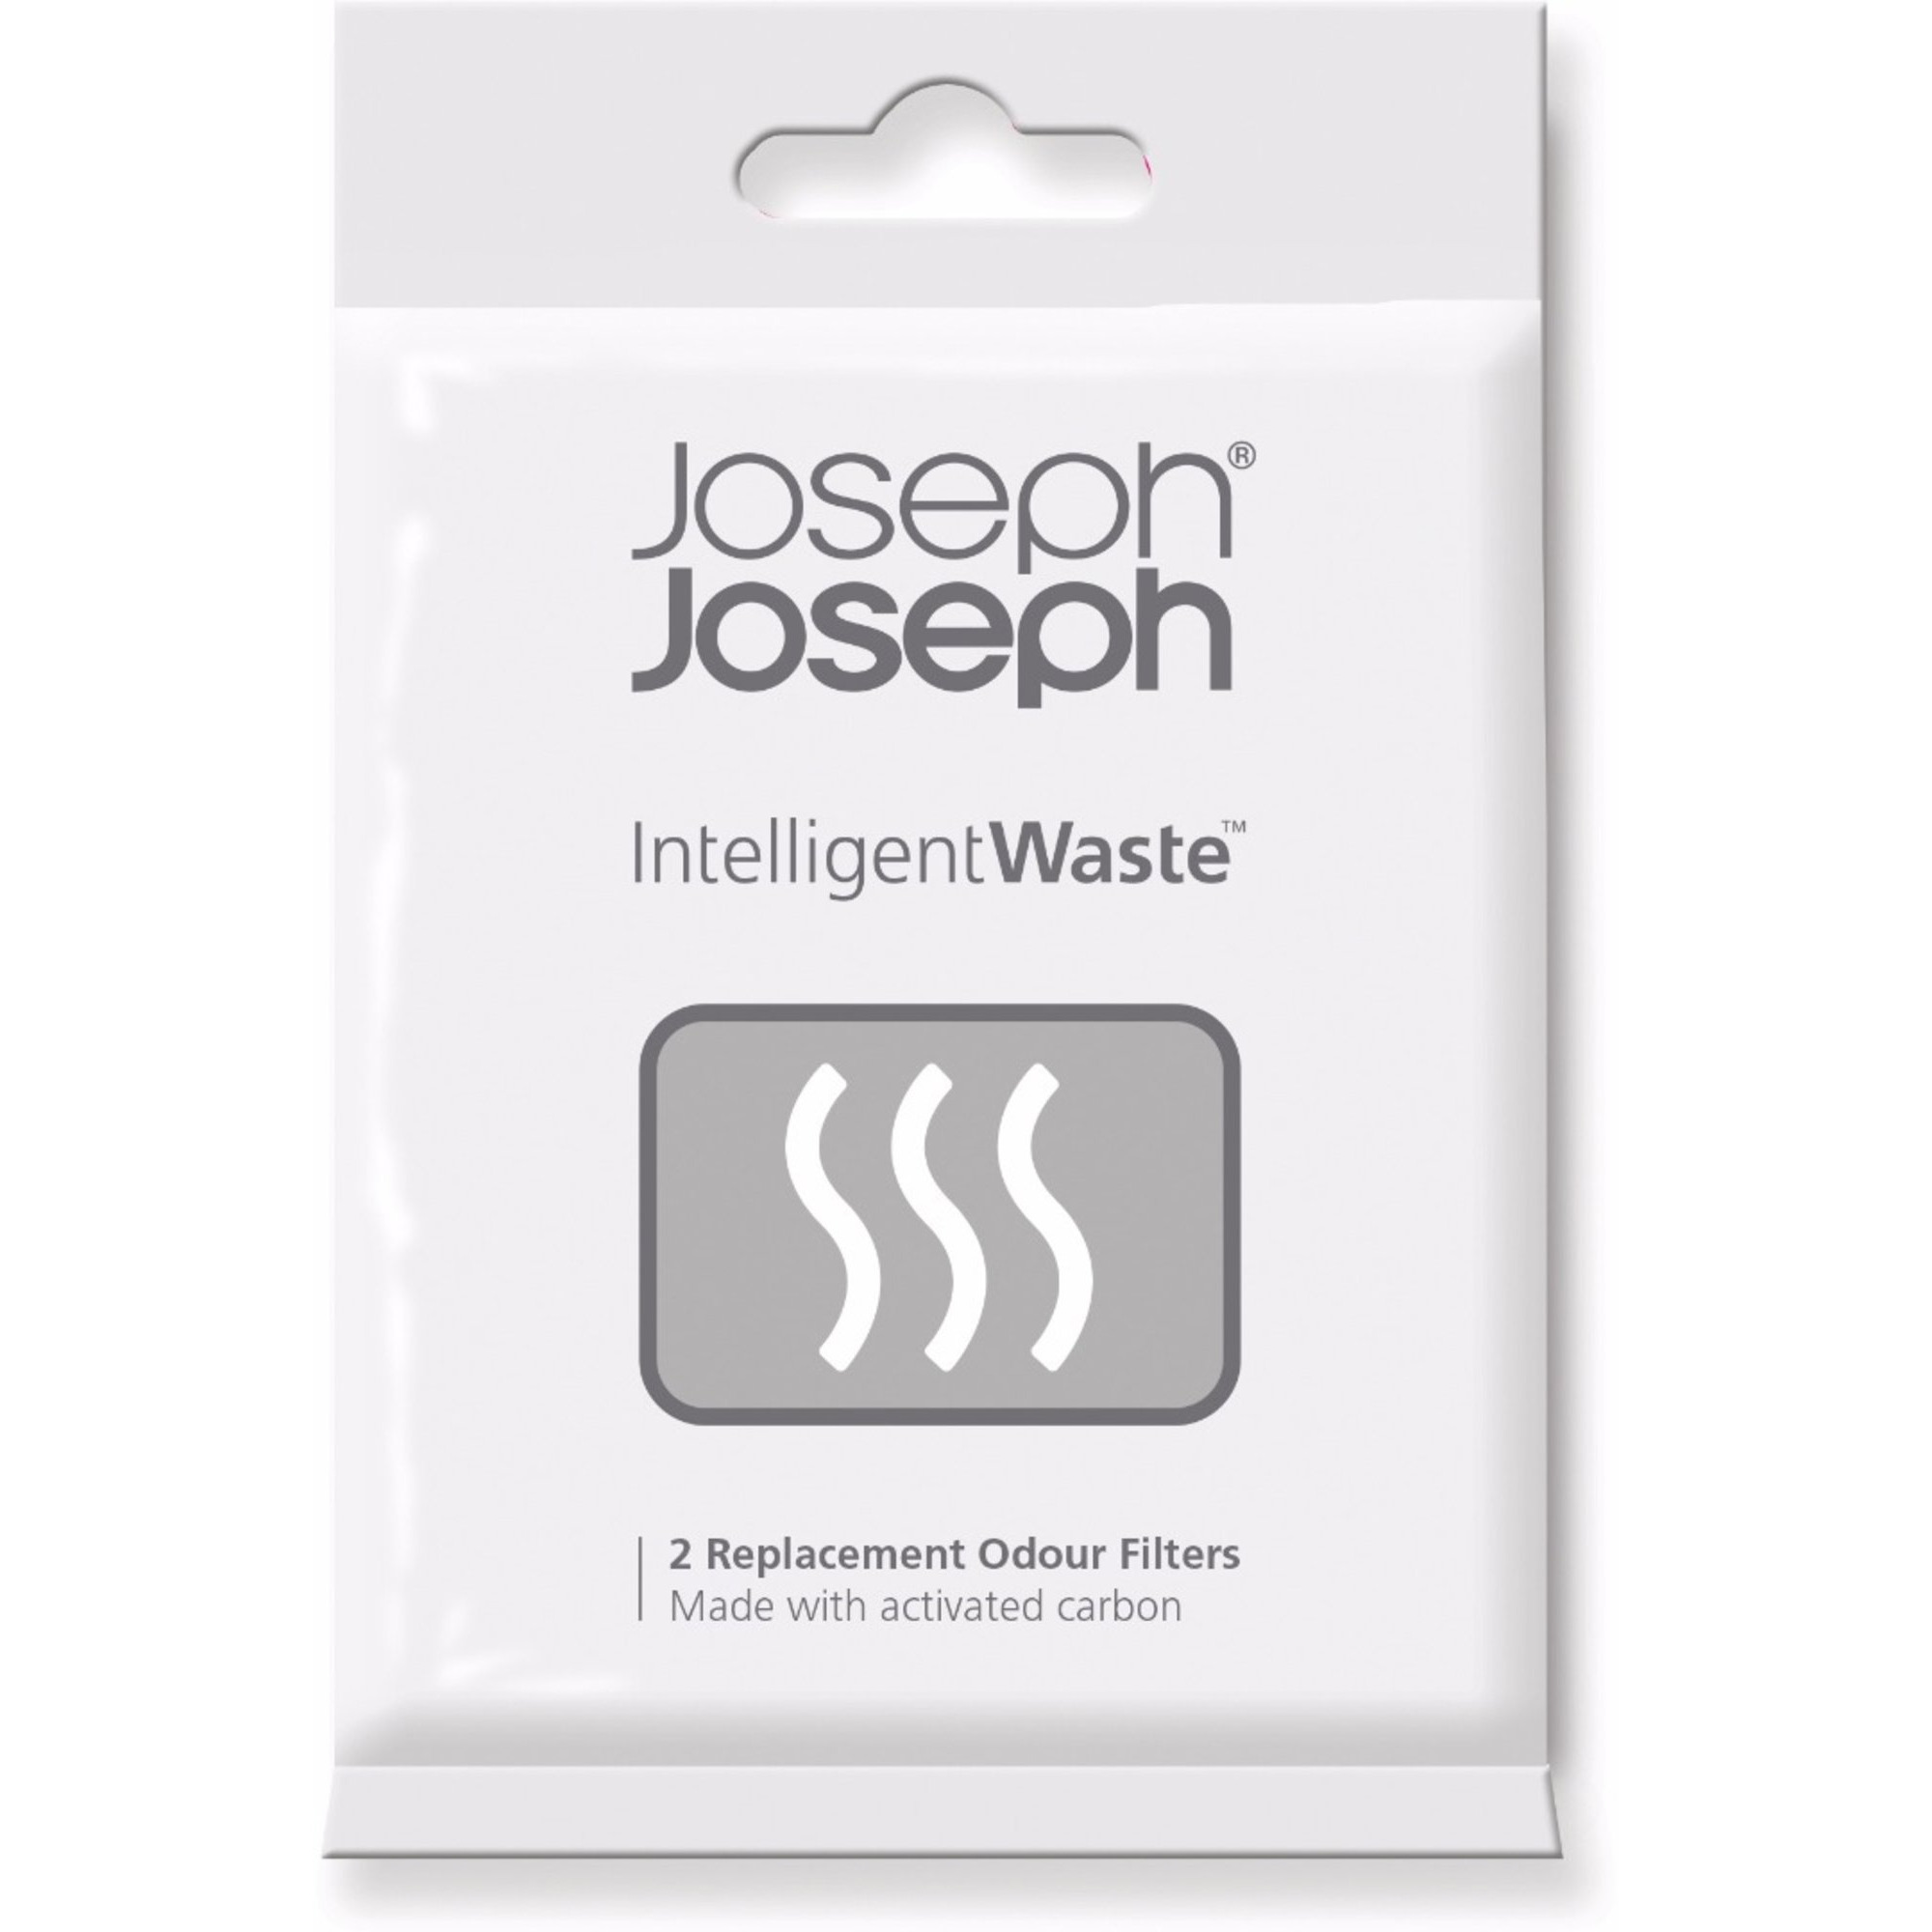 Joseph Joseph Intelligent Waste carbon filter